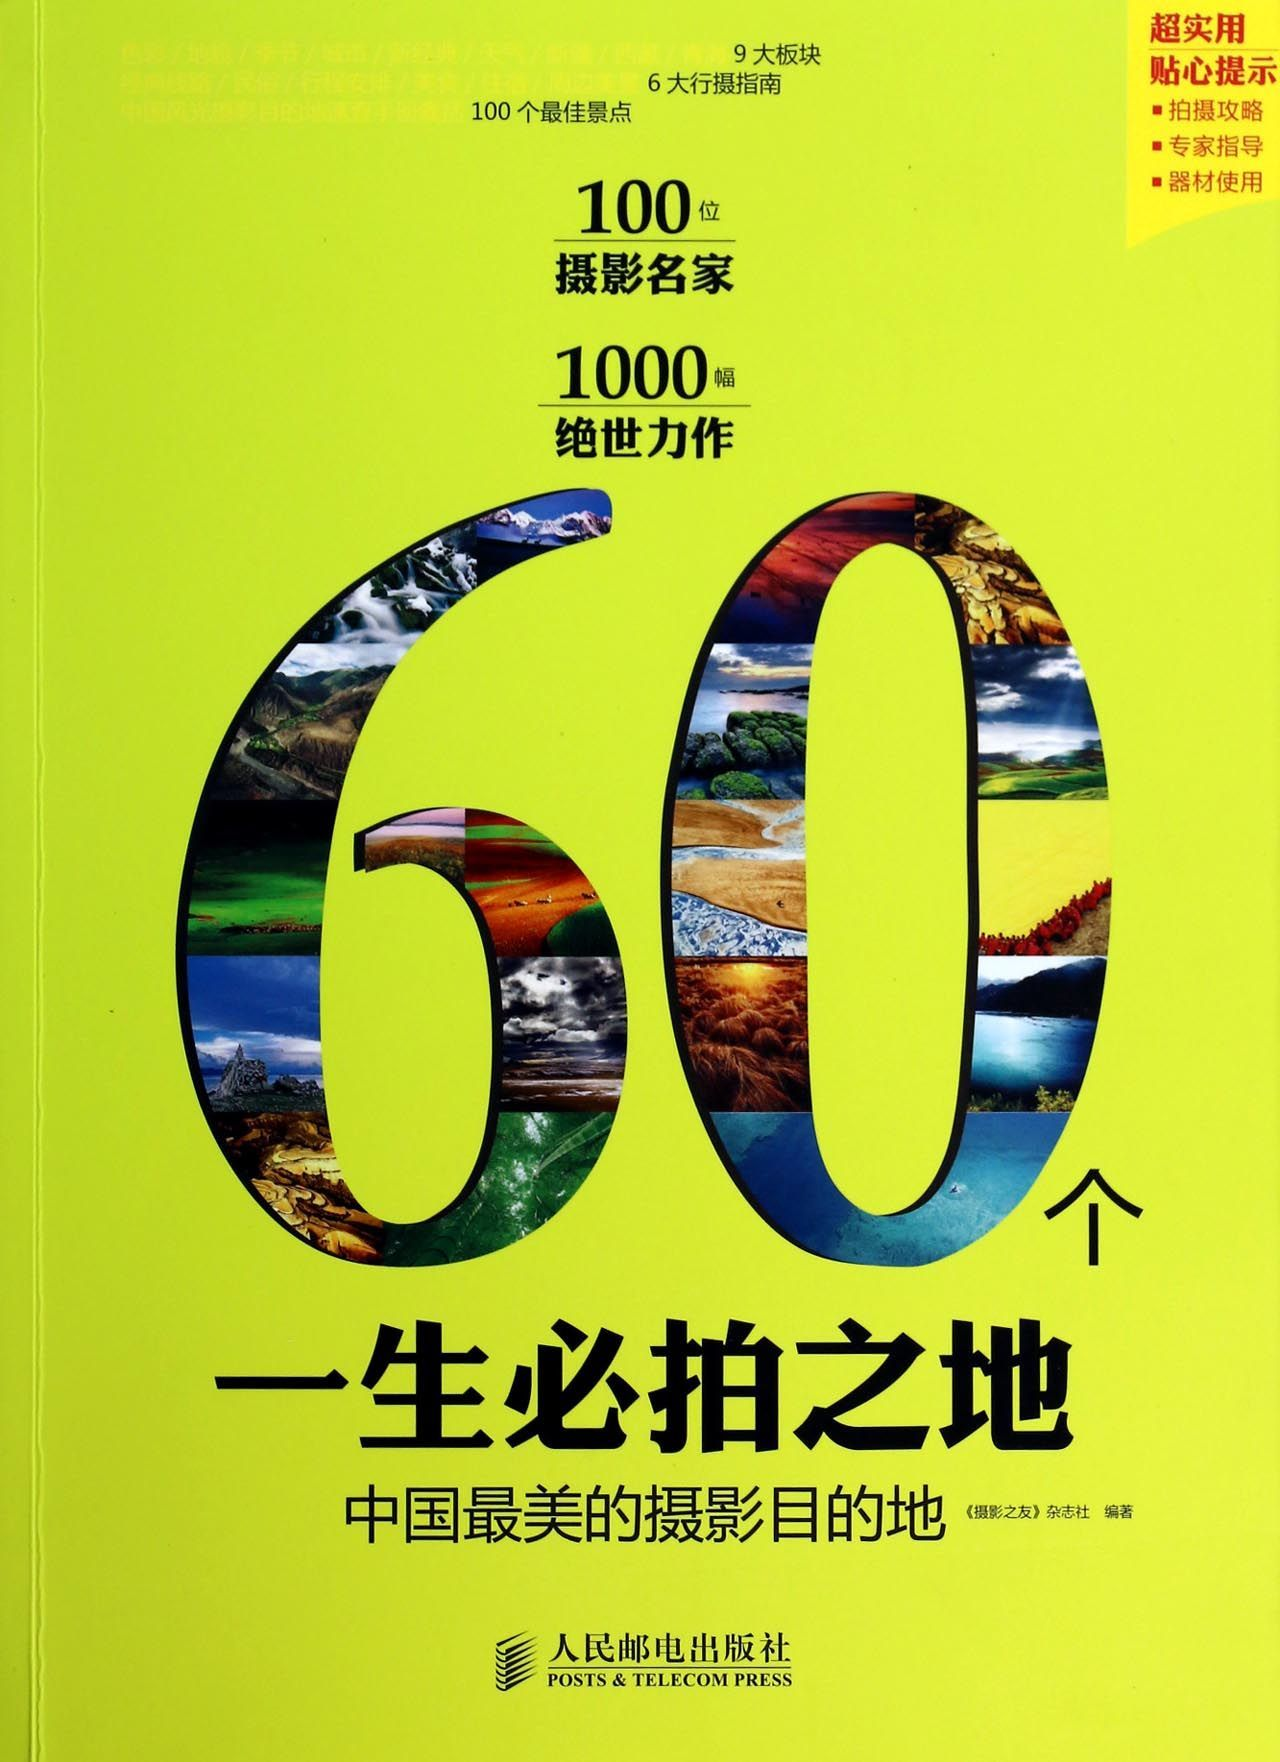 60 Target Shooting Places in Our Life — Most Beautiful Photography Destinations in China 60个一生必拍之地 Photographers' Company 《摄影之友》杂志社